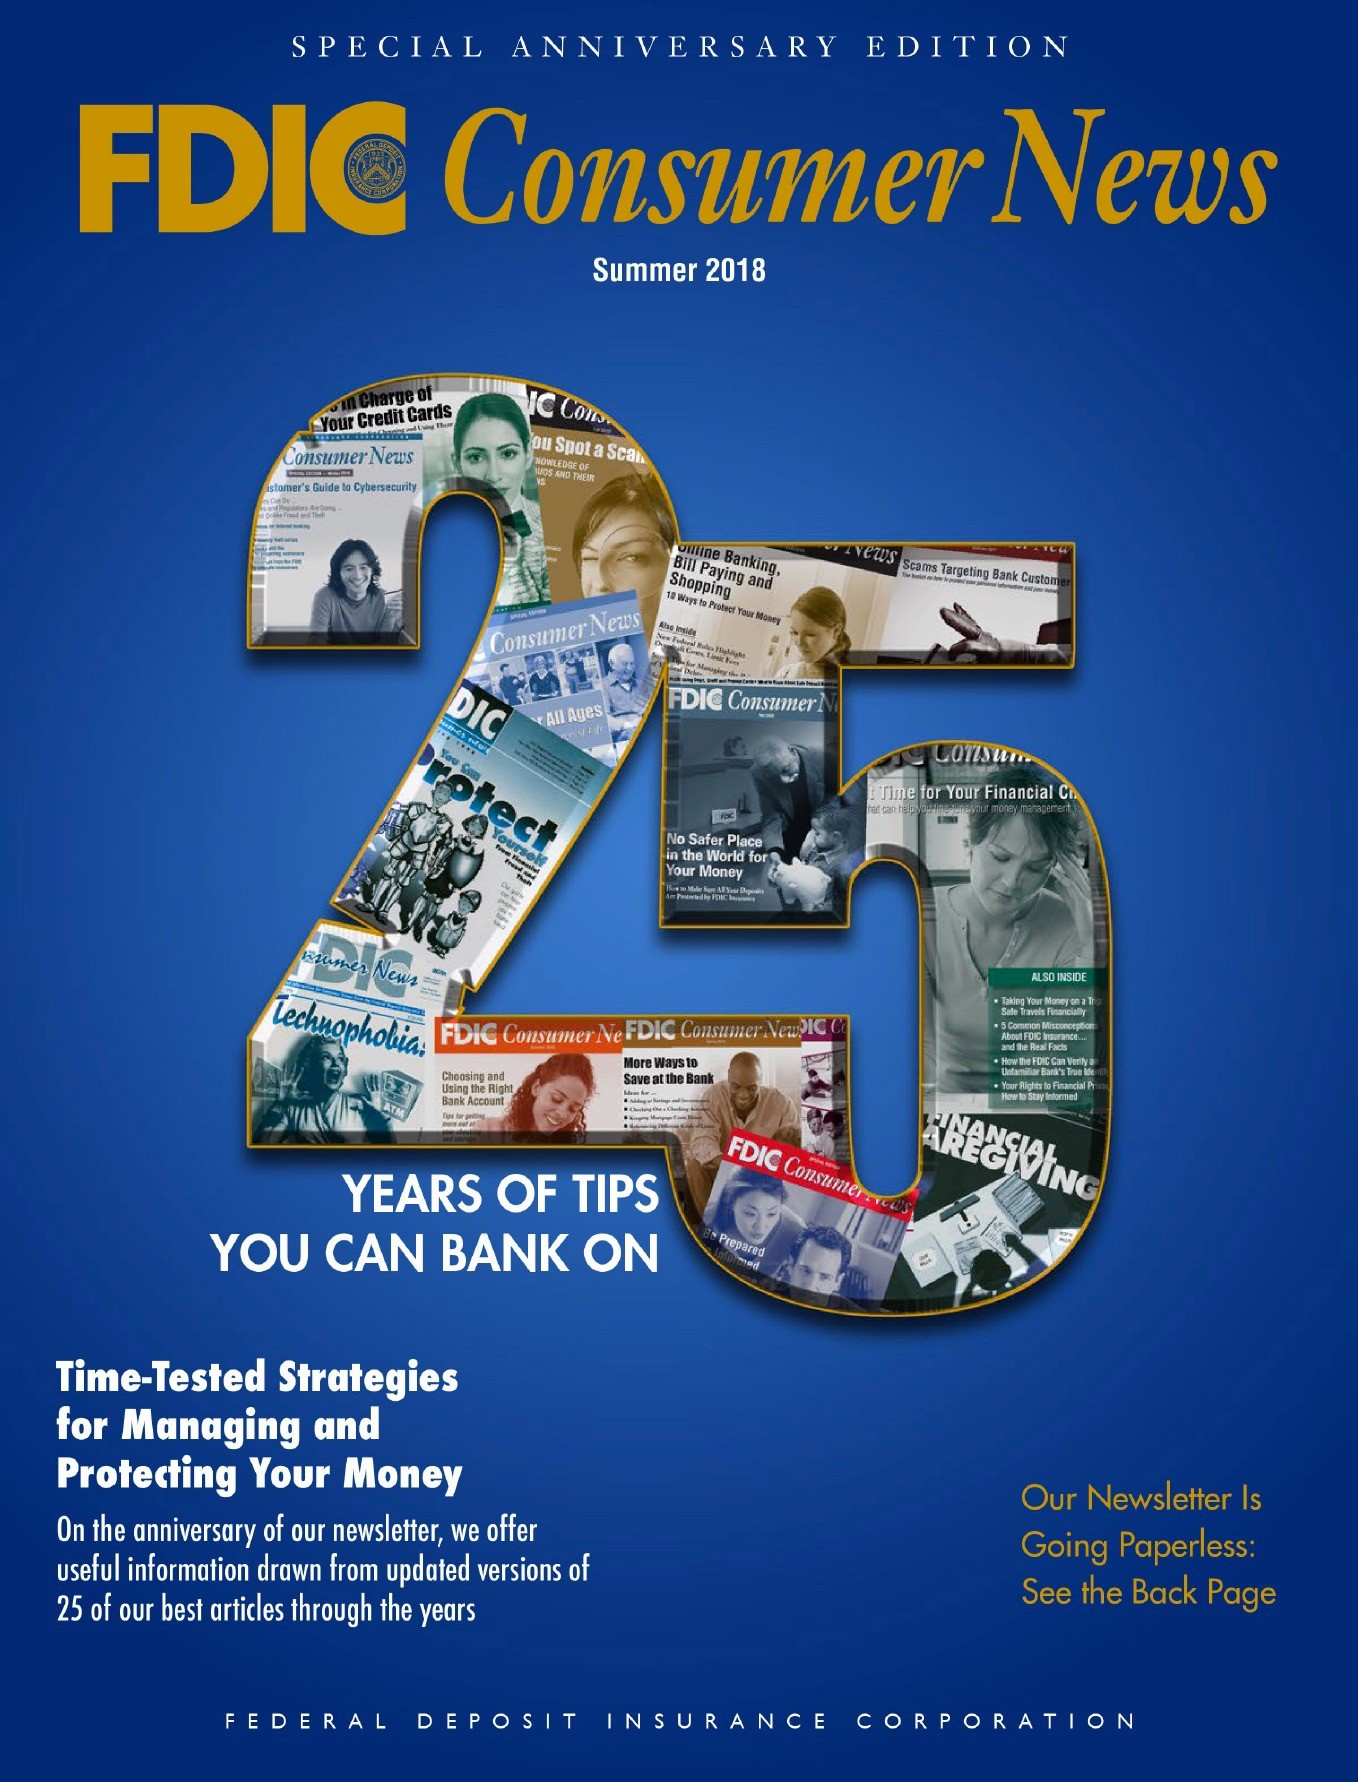 FDIC Consumer New Magazine